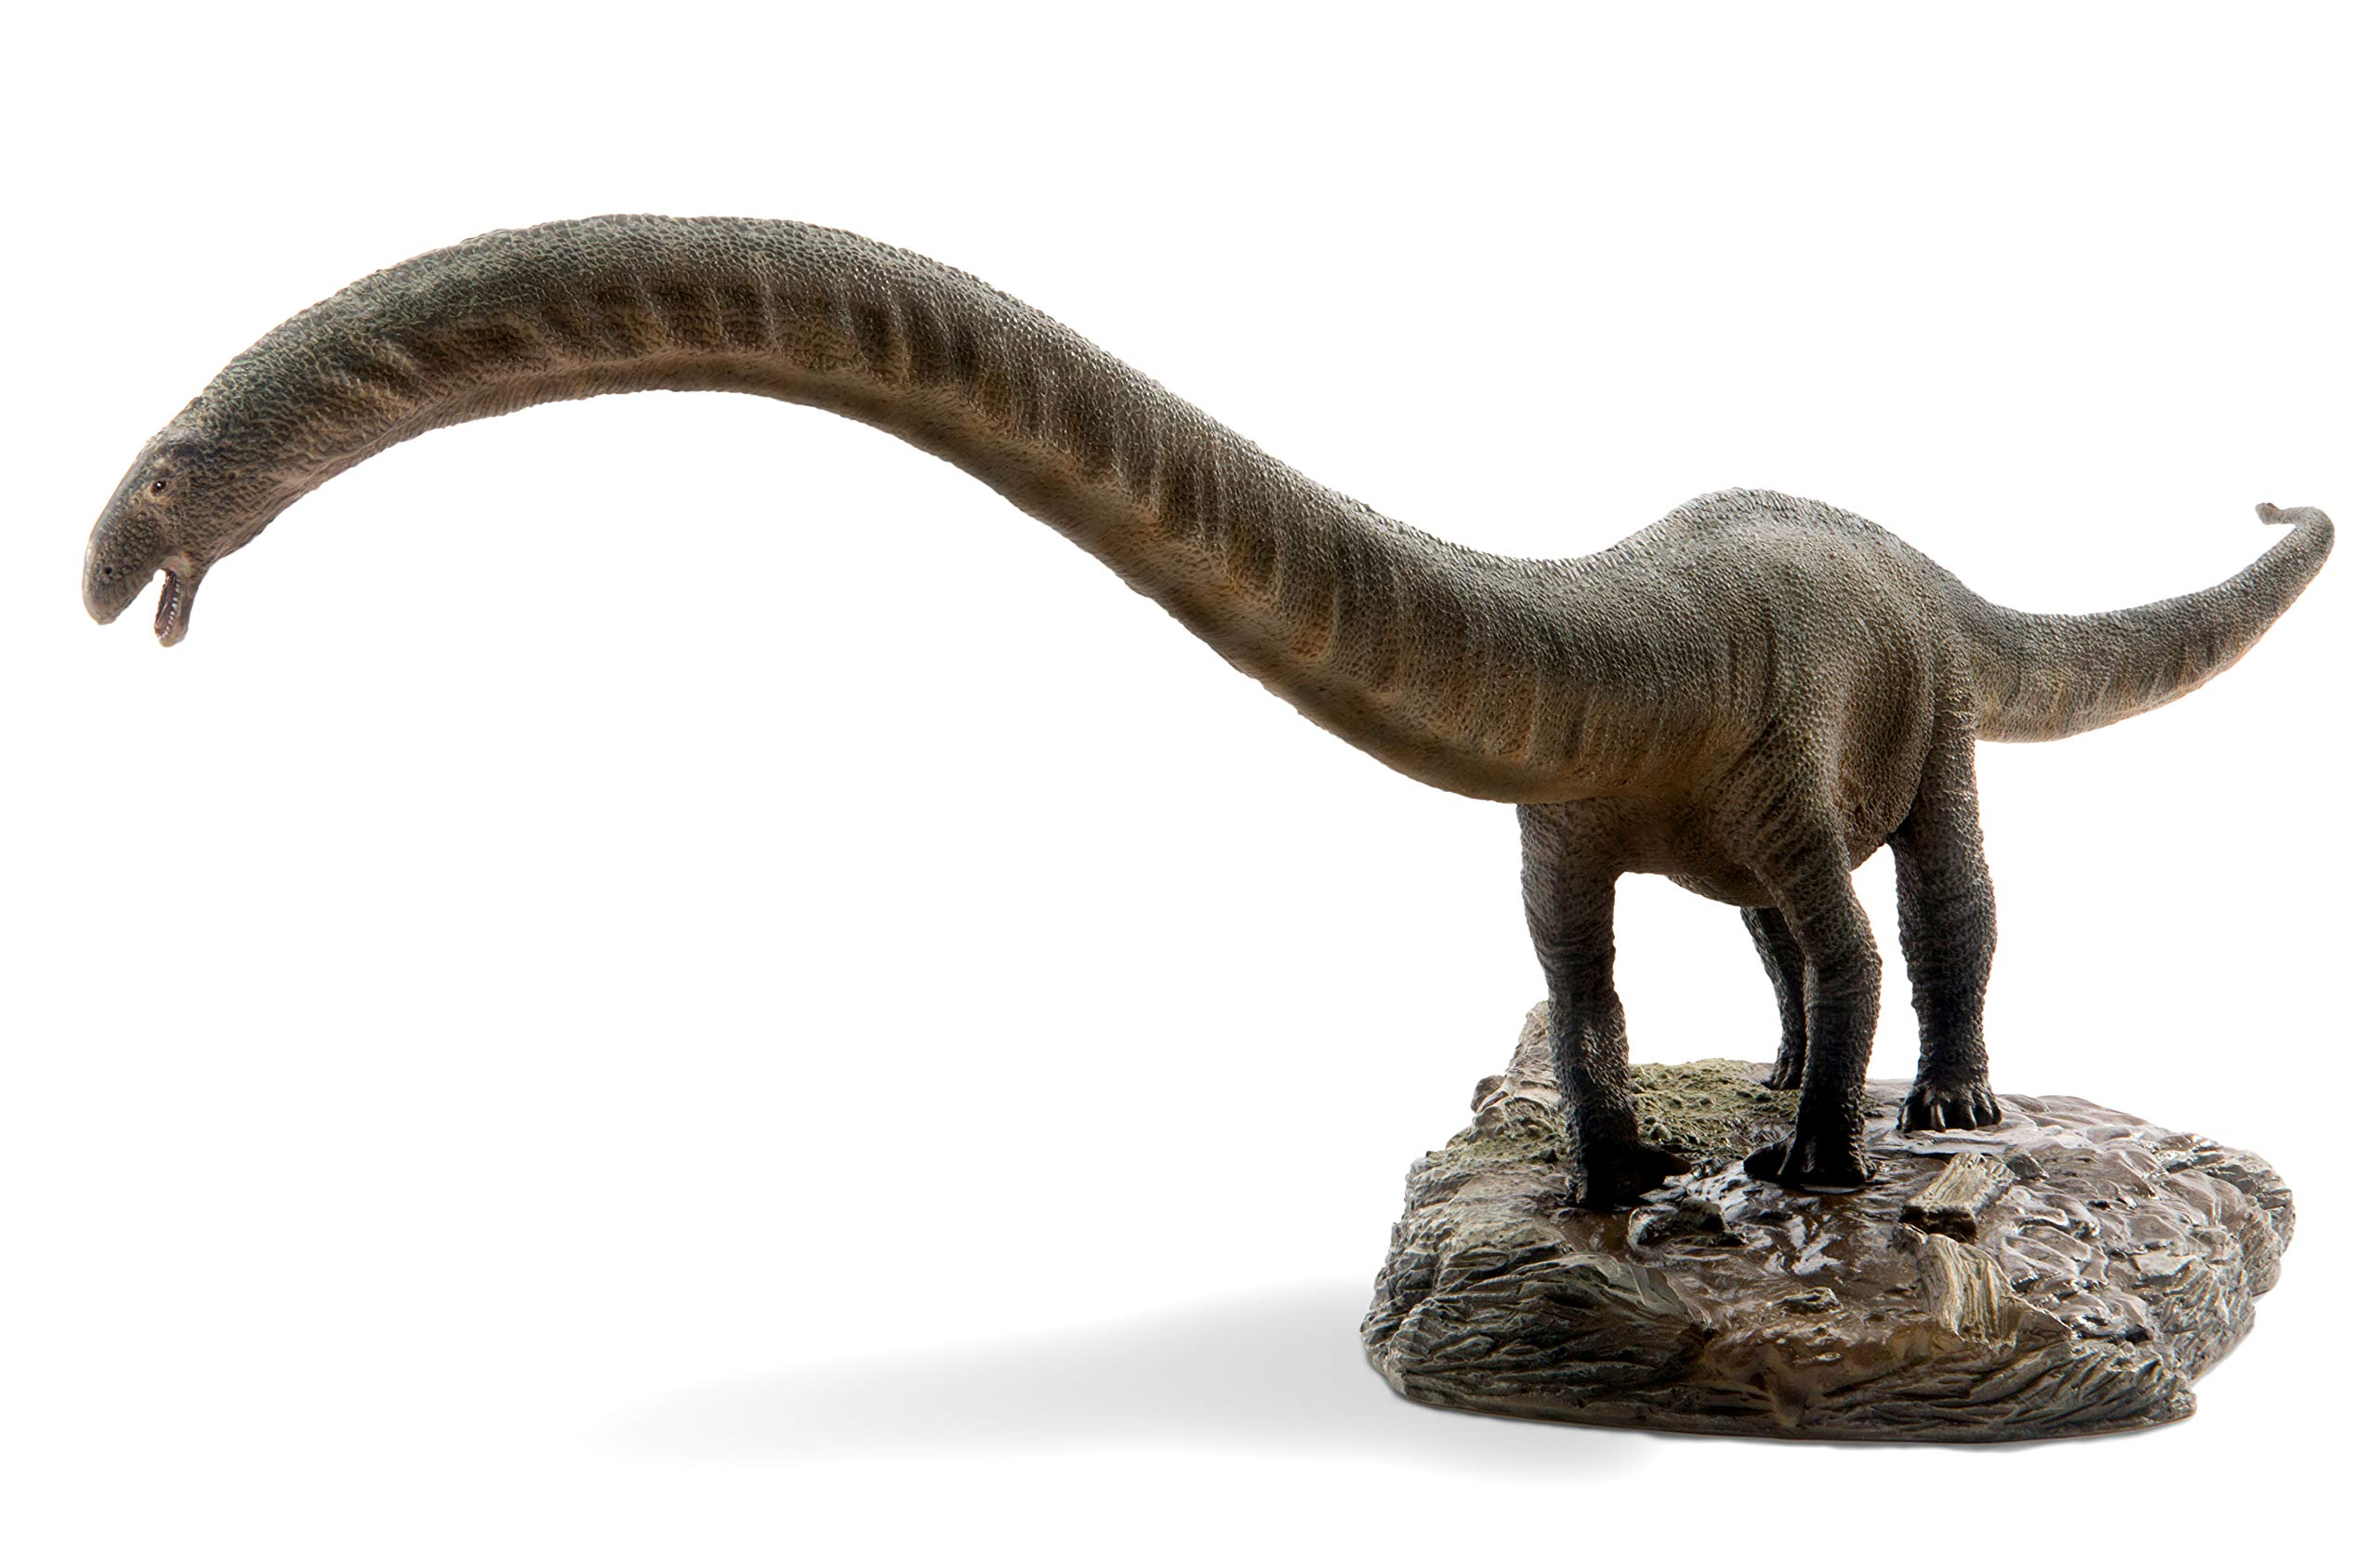 PNSO Dinosaur Museums Series ER-MA The Mamenchisaurus 1:35 Scientific Art Models